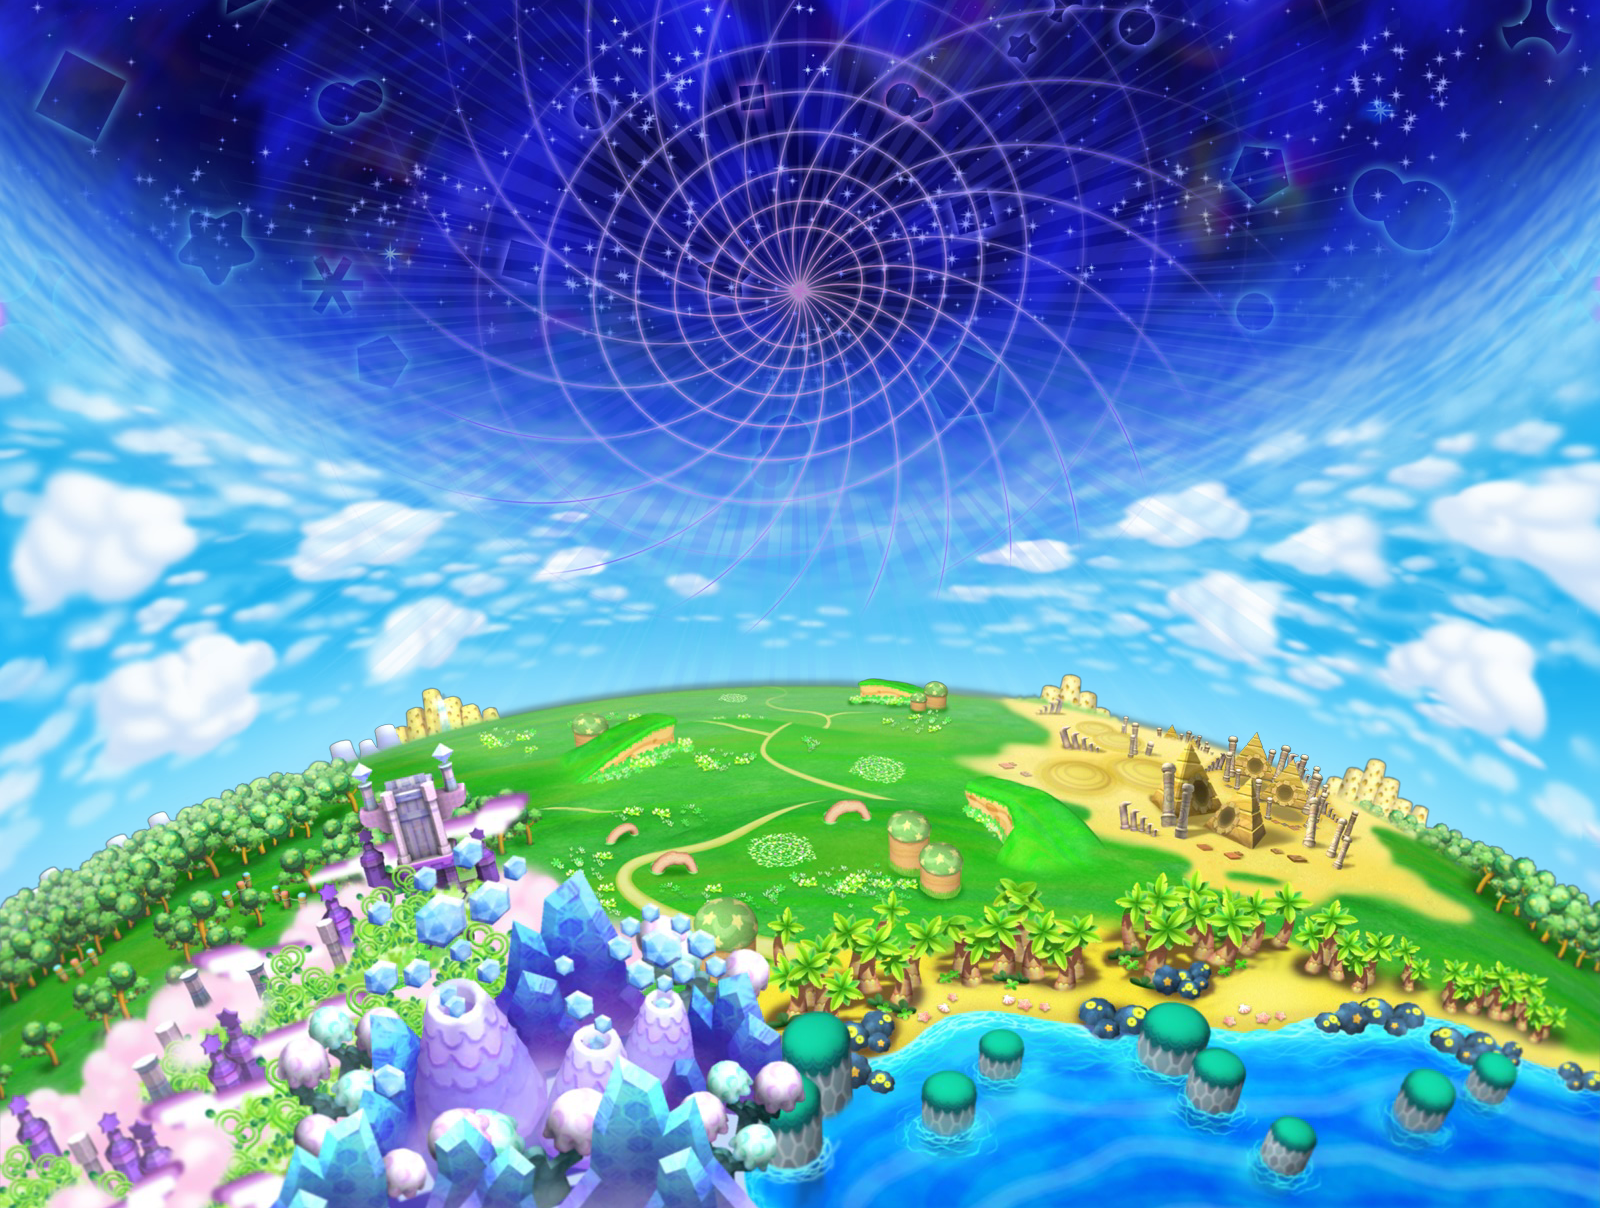 Dream Land | Kirby Wiki | FANDOM powered by Wikia on alexandria map, eclipse map, love map, america map, fiction map,